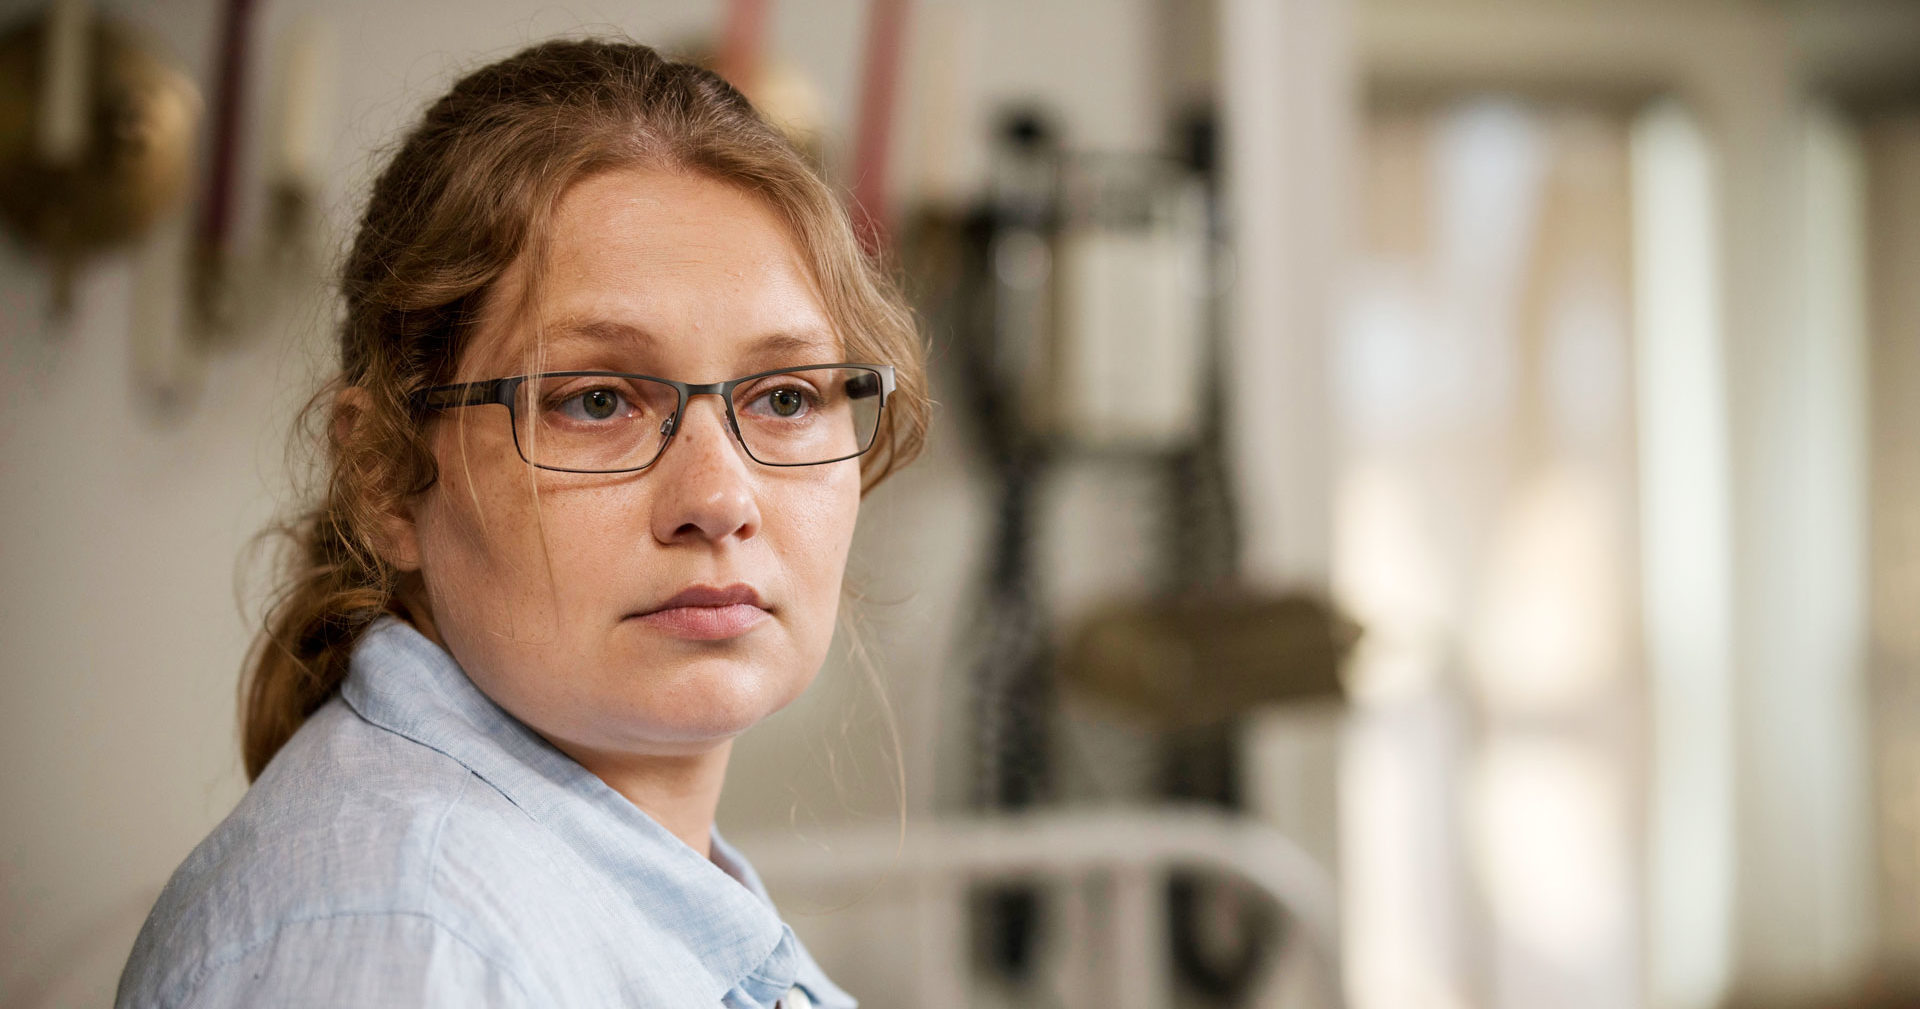 Merritt Wever High Quality Wallpapers